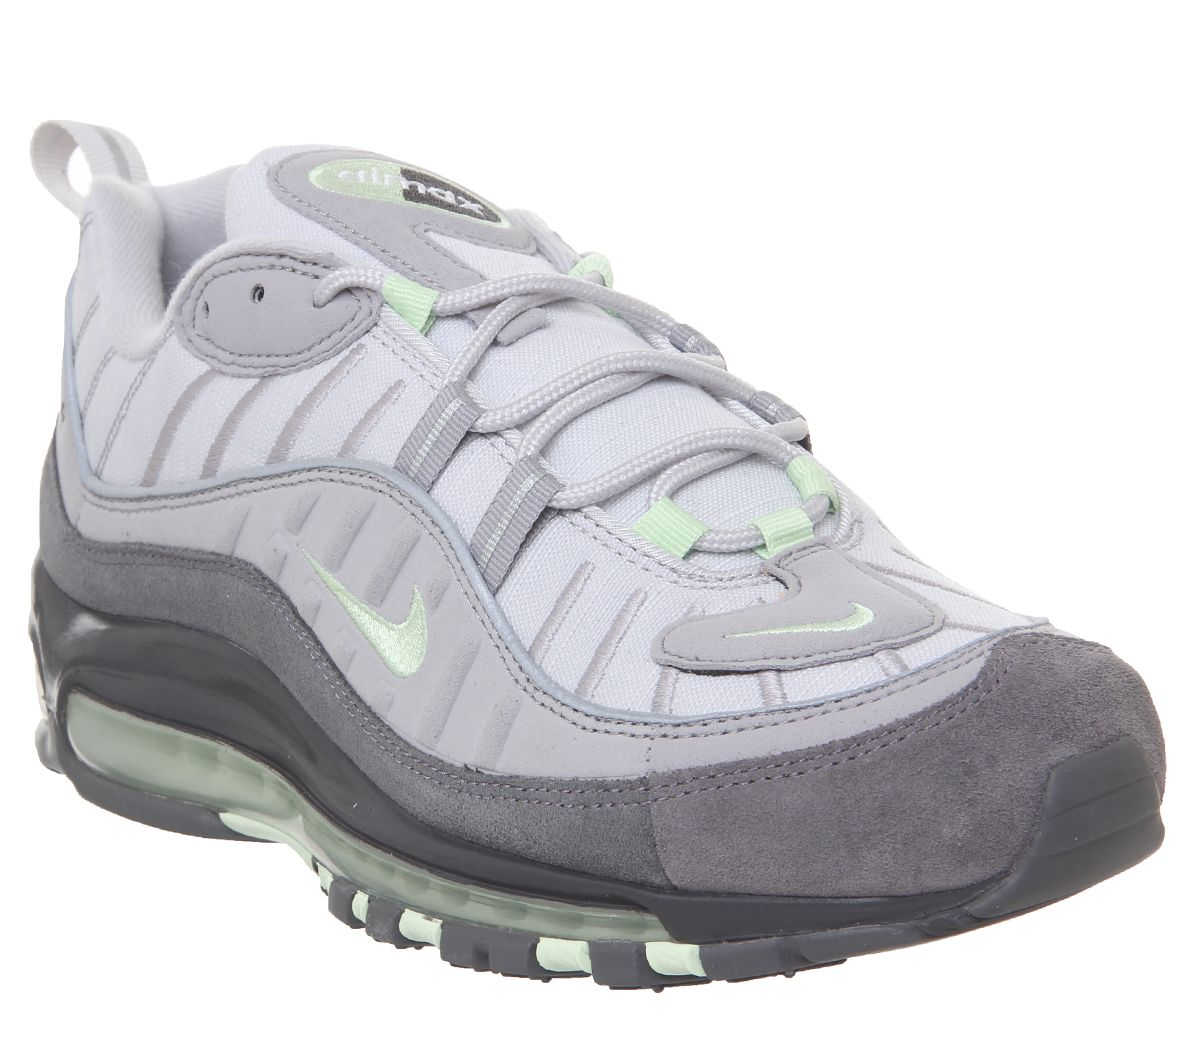 best service ff169 f8a6b Air Max 98 Trainers